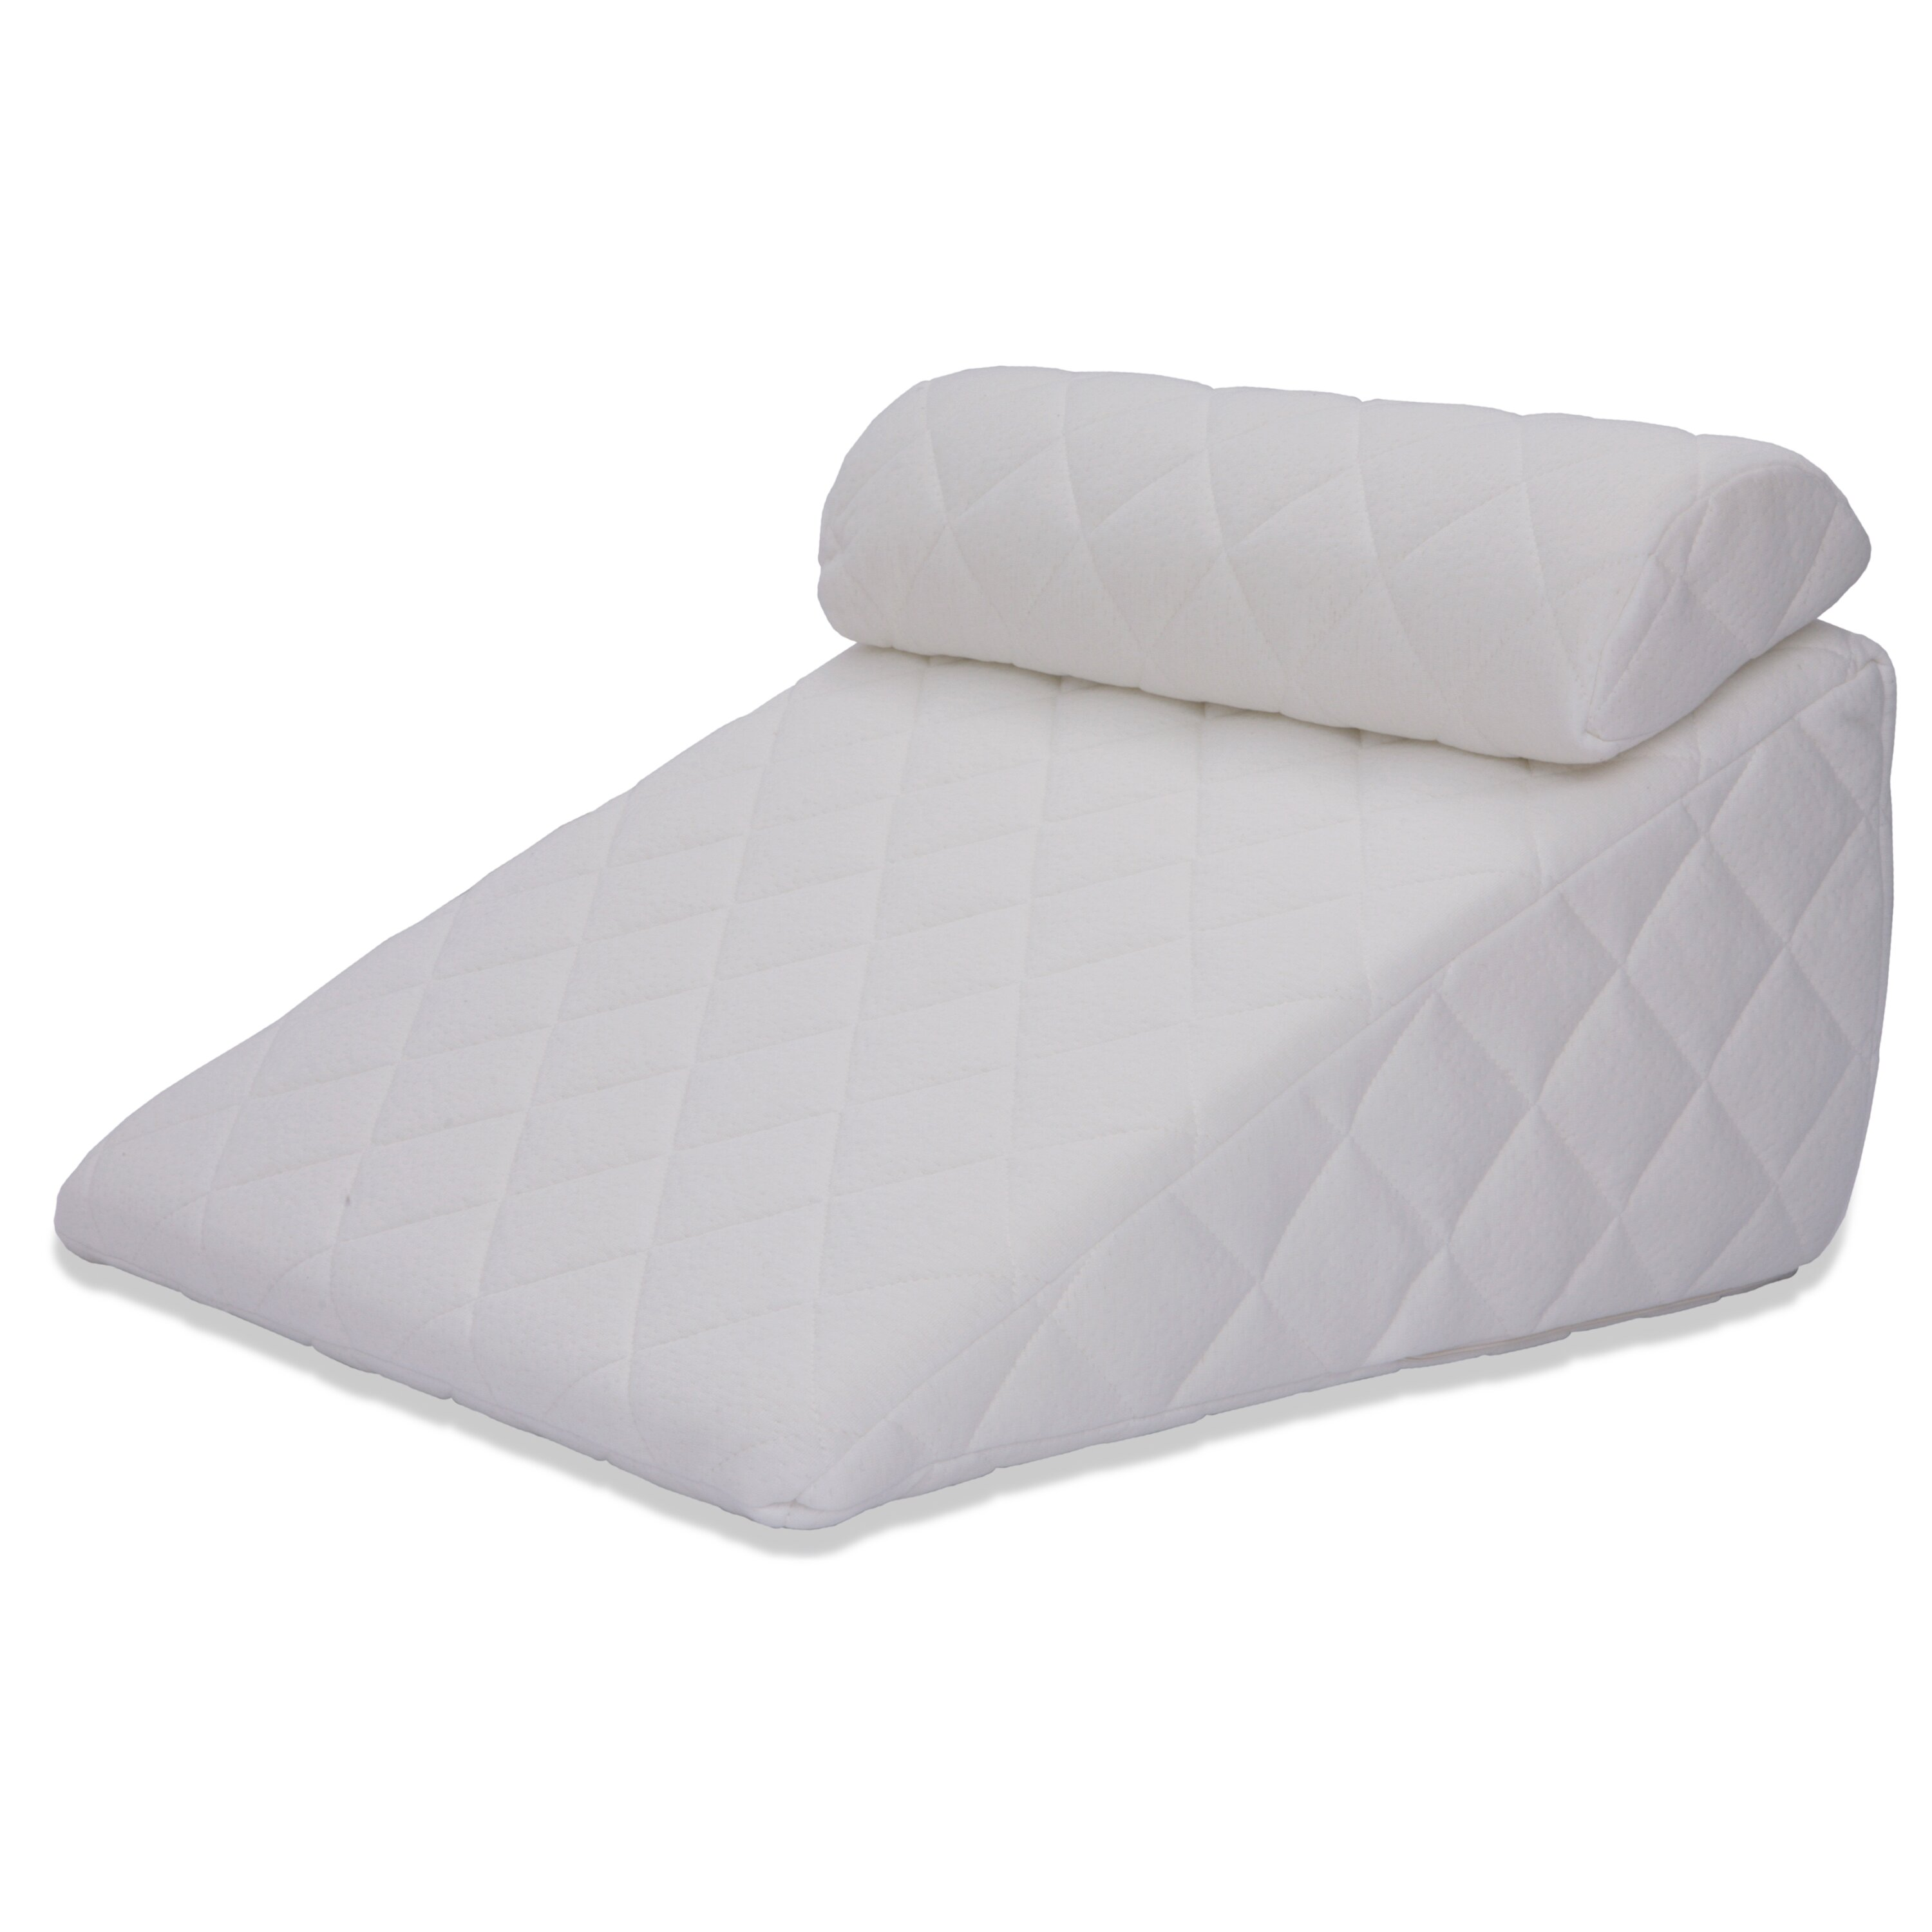 bed pillows reviews - 28 images - topsleepy goose feather filling